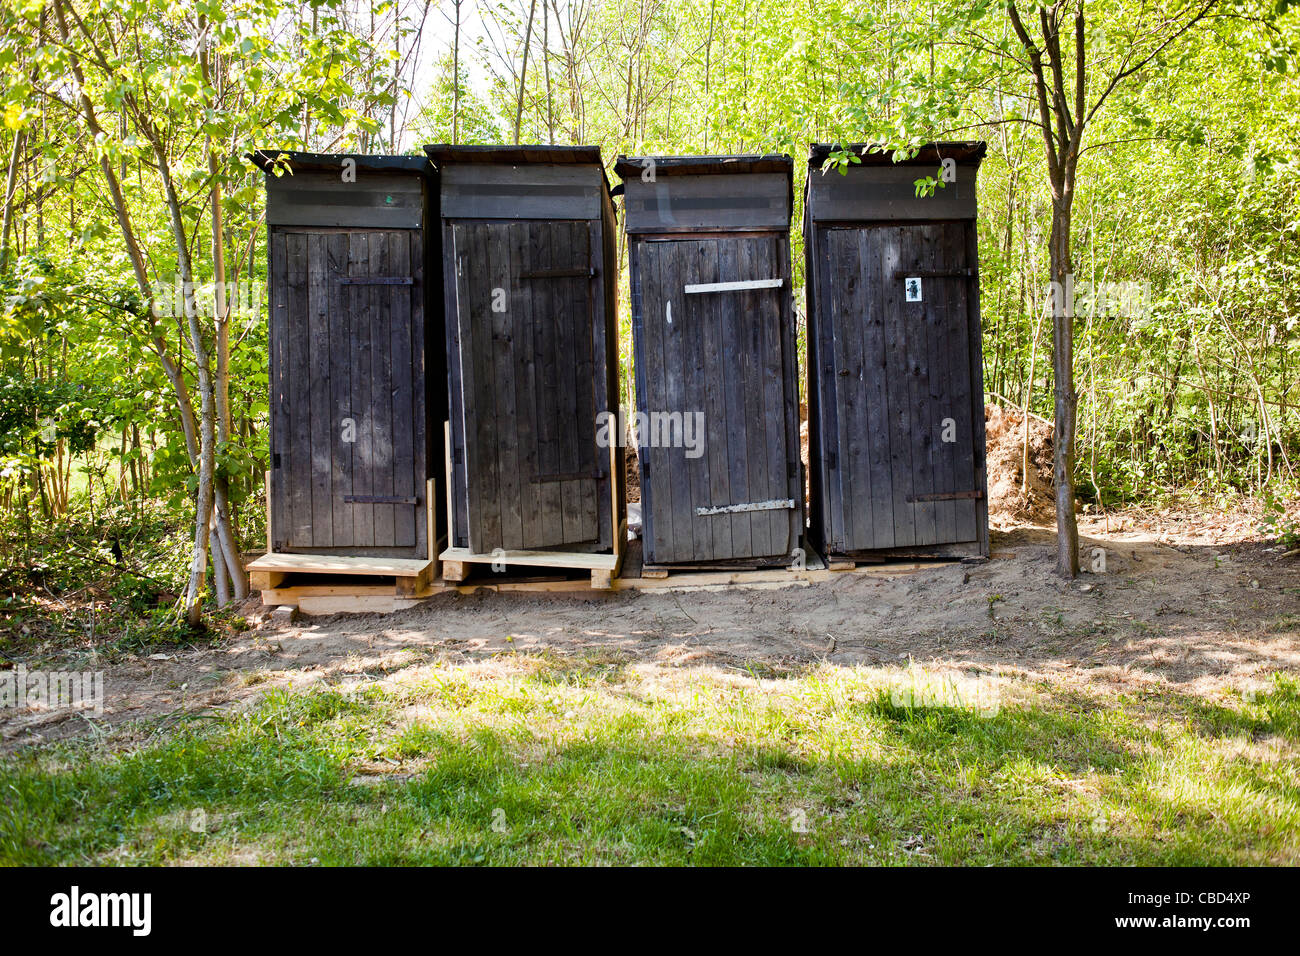 Primitive outdoor toilets without running water, latrine, WC. (CTK Photo/Rene Fluger) - Stock Image